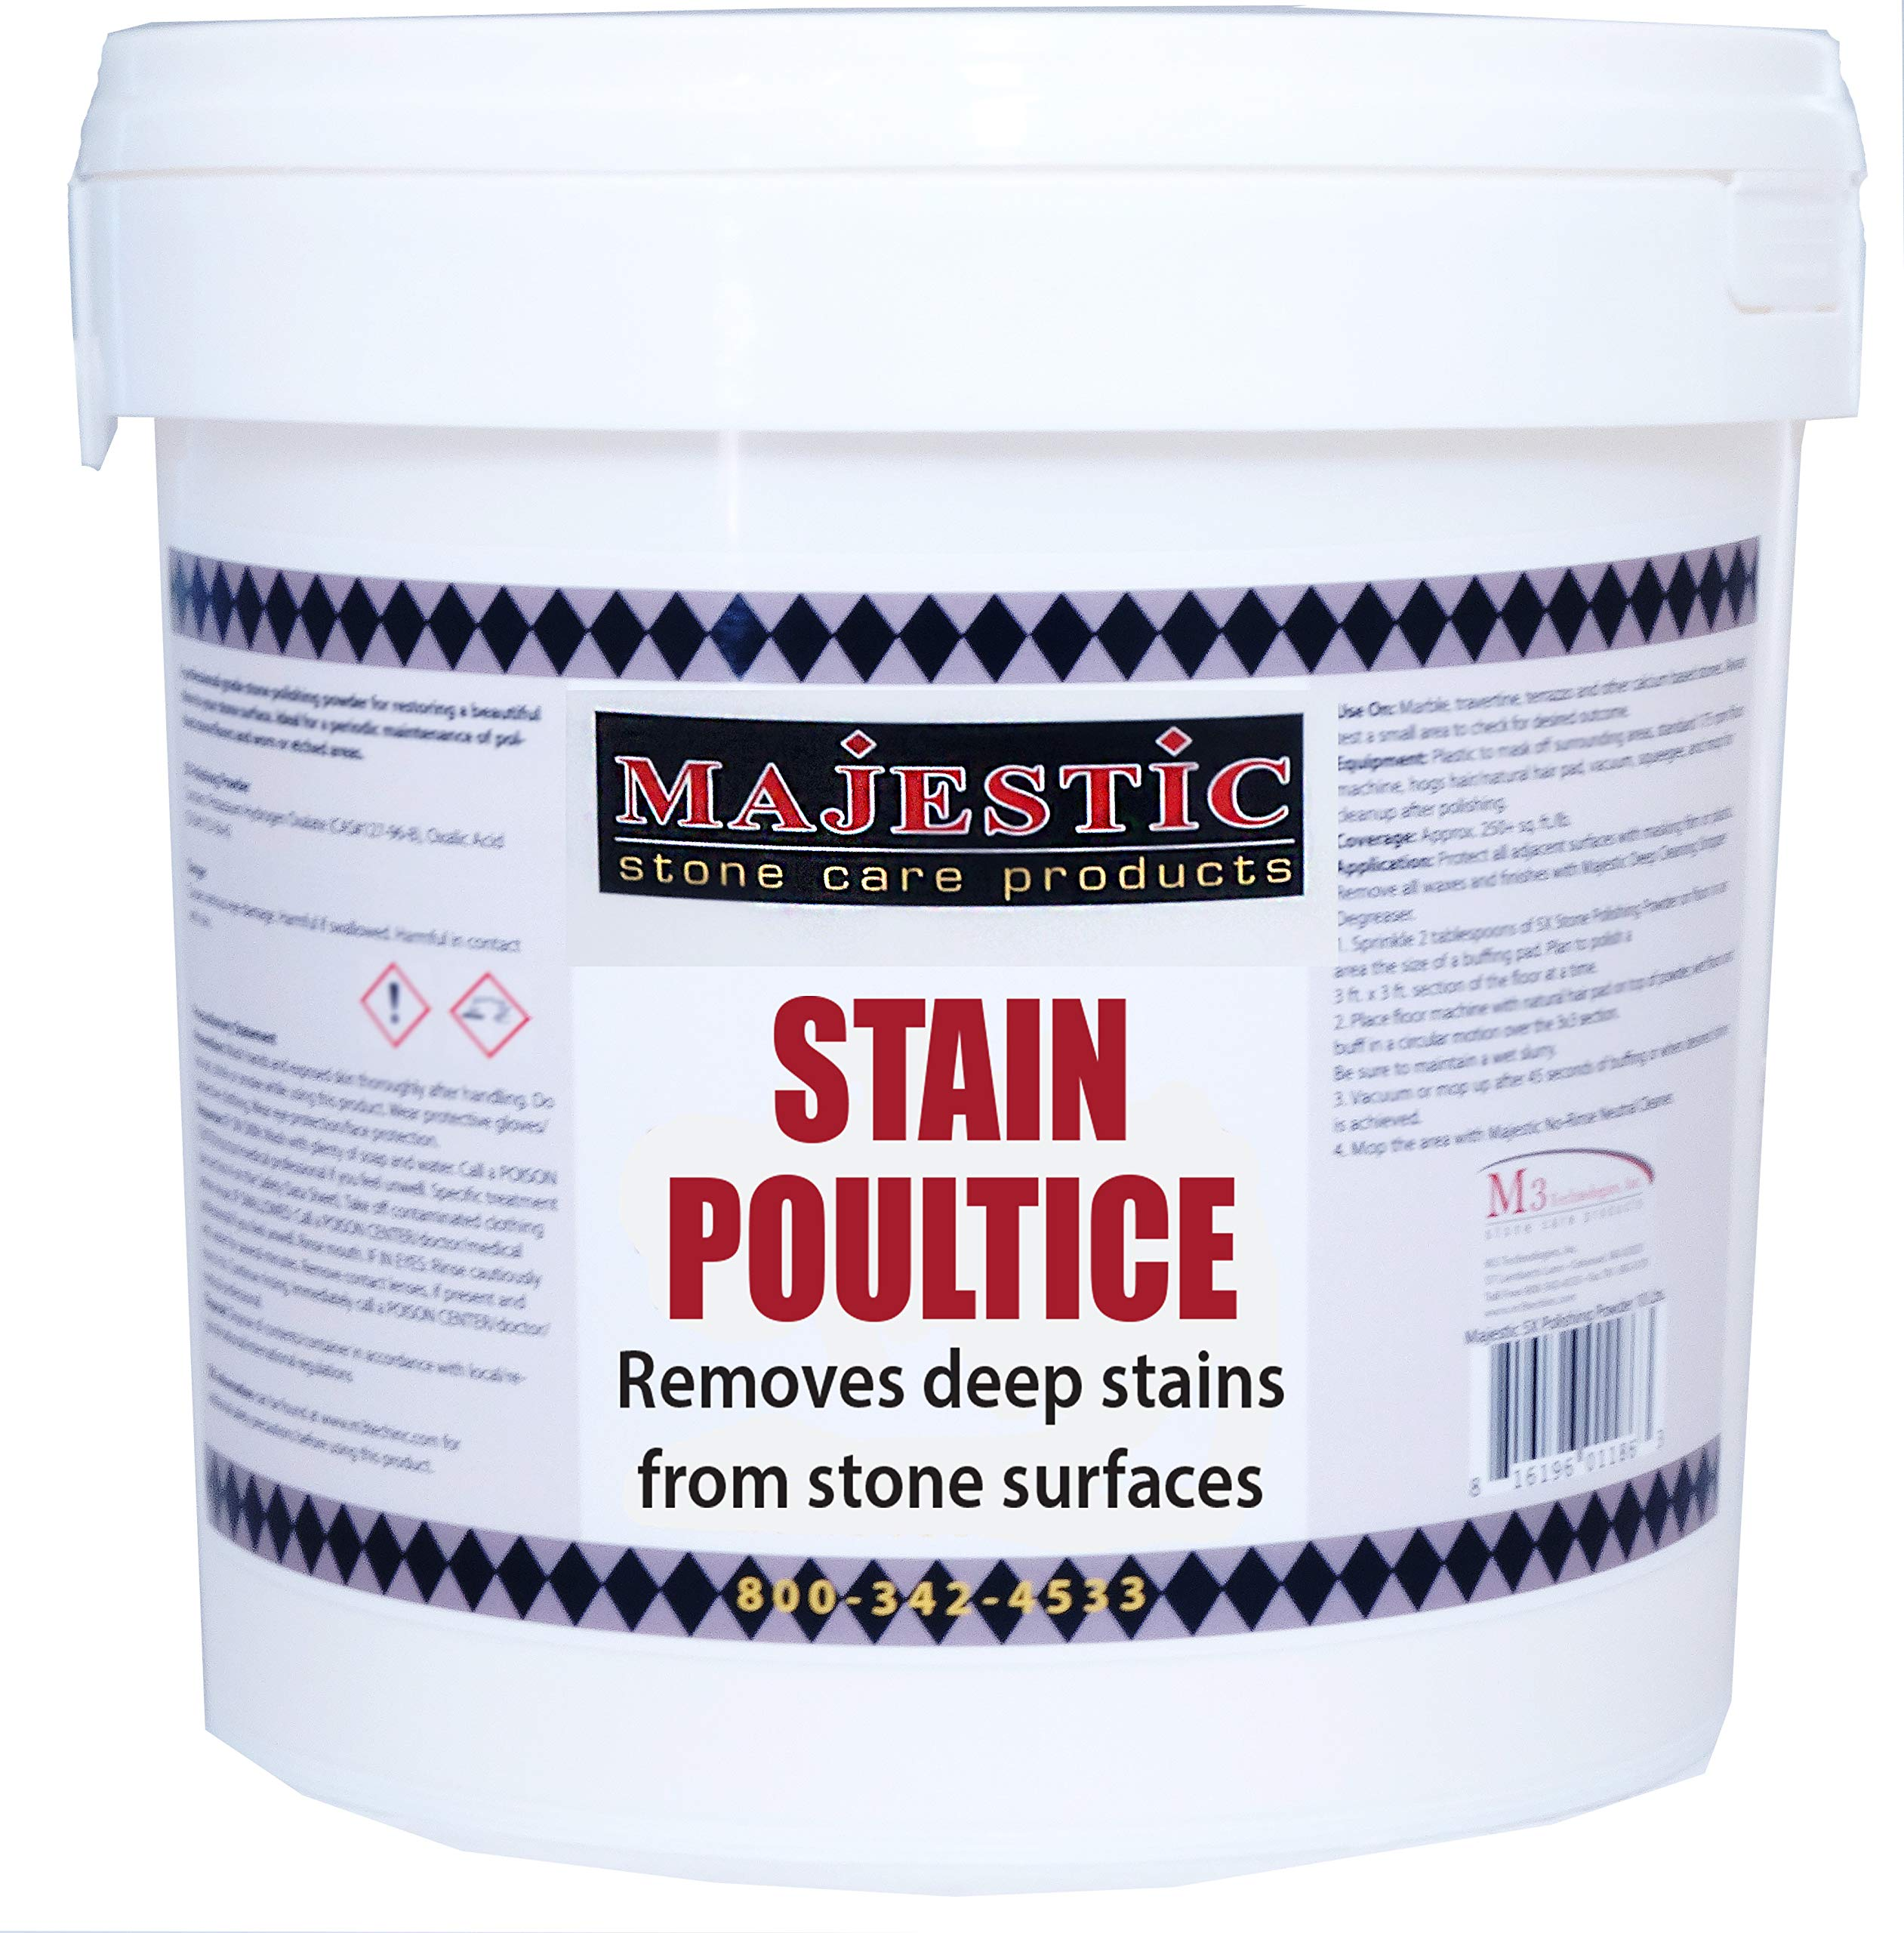 Poultice Powder-Case of 4 (1.5 lbs) by Majestic Stone Care Products